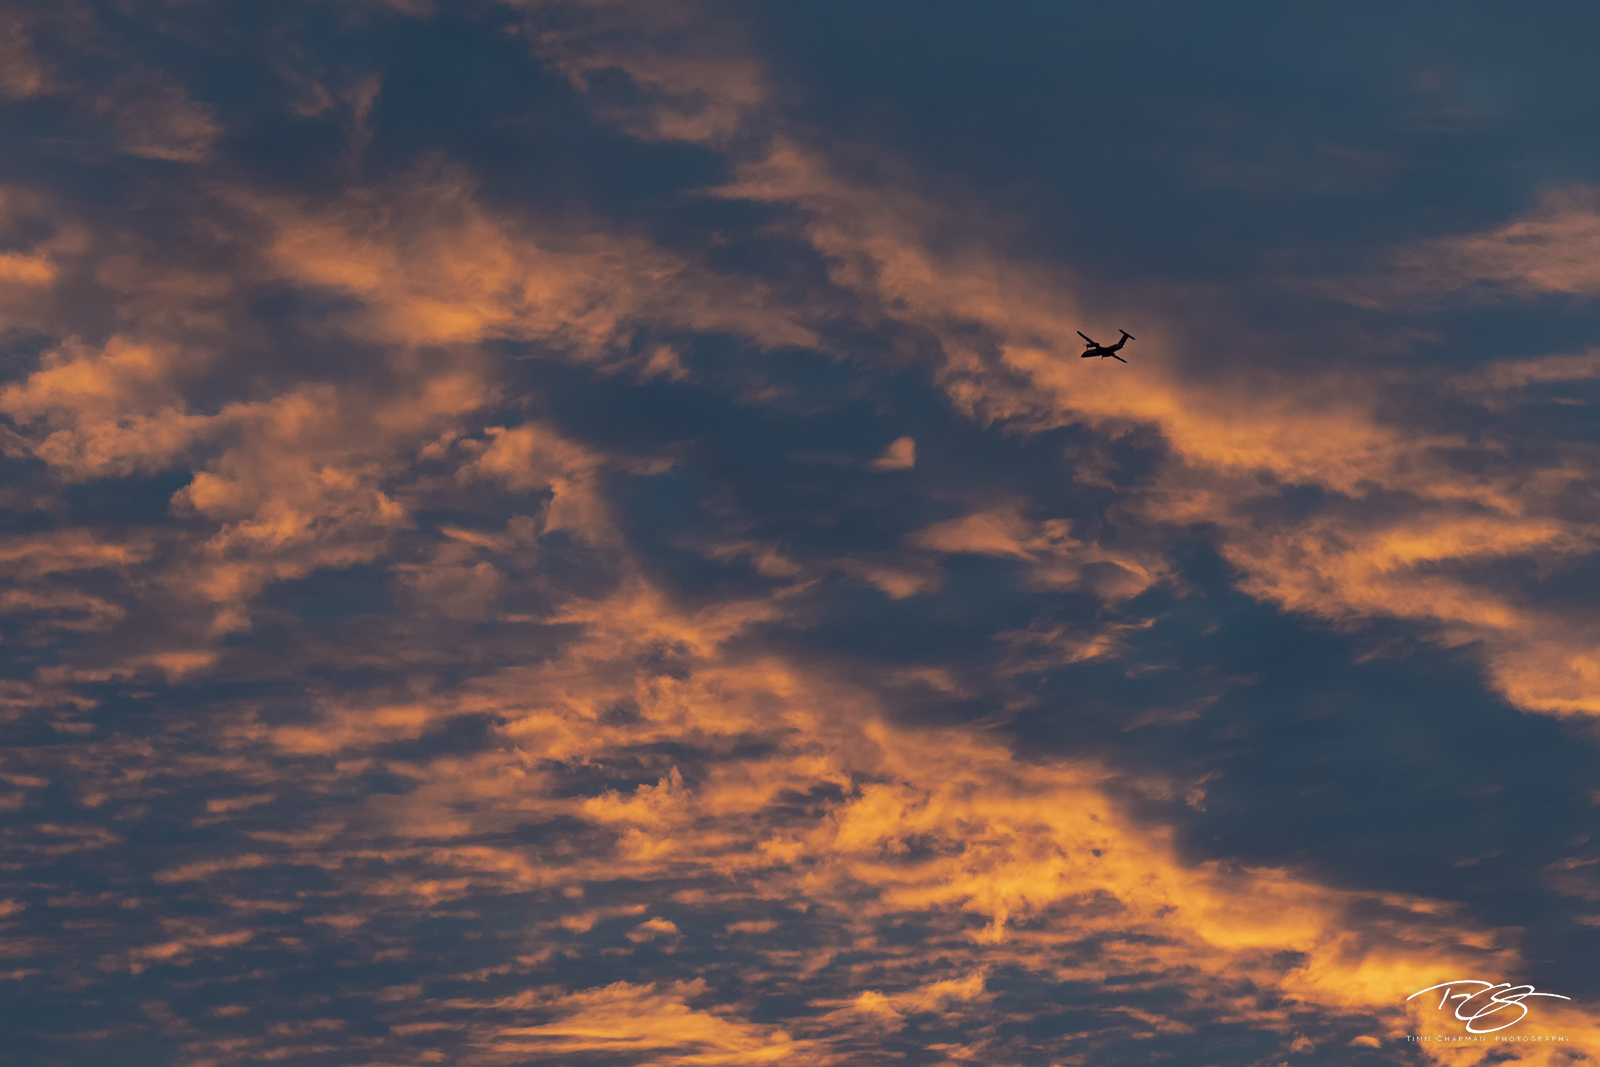 clouds; sky; fiery; colourful; colorful; cloudy; airplane; aircraft; flying; silhouette; flight; aircraft in flight; plane; plane in flight, photo